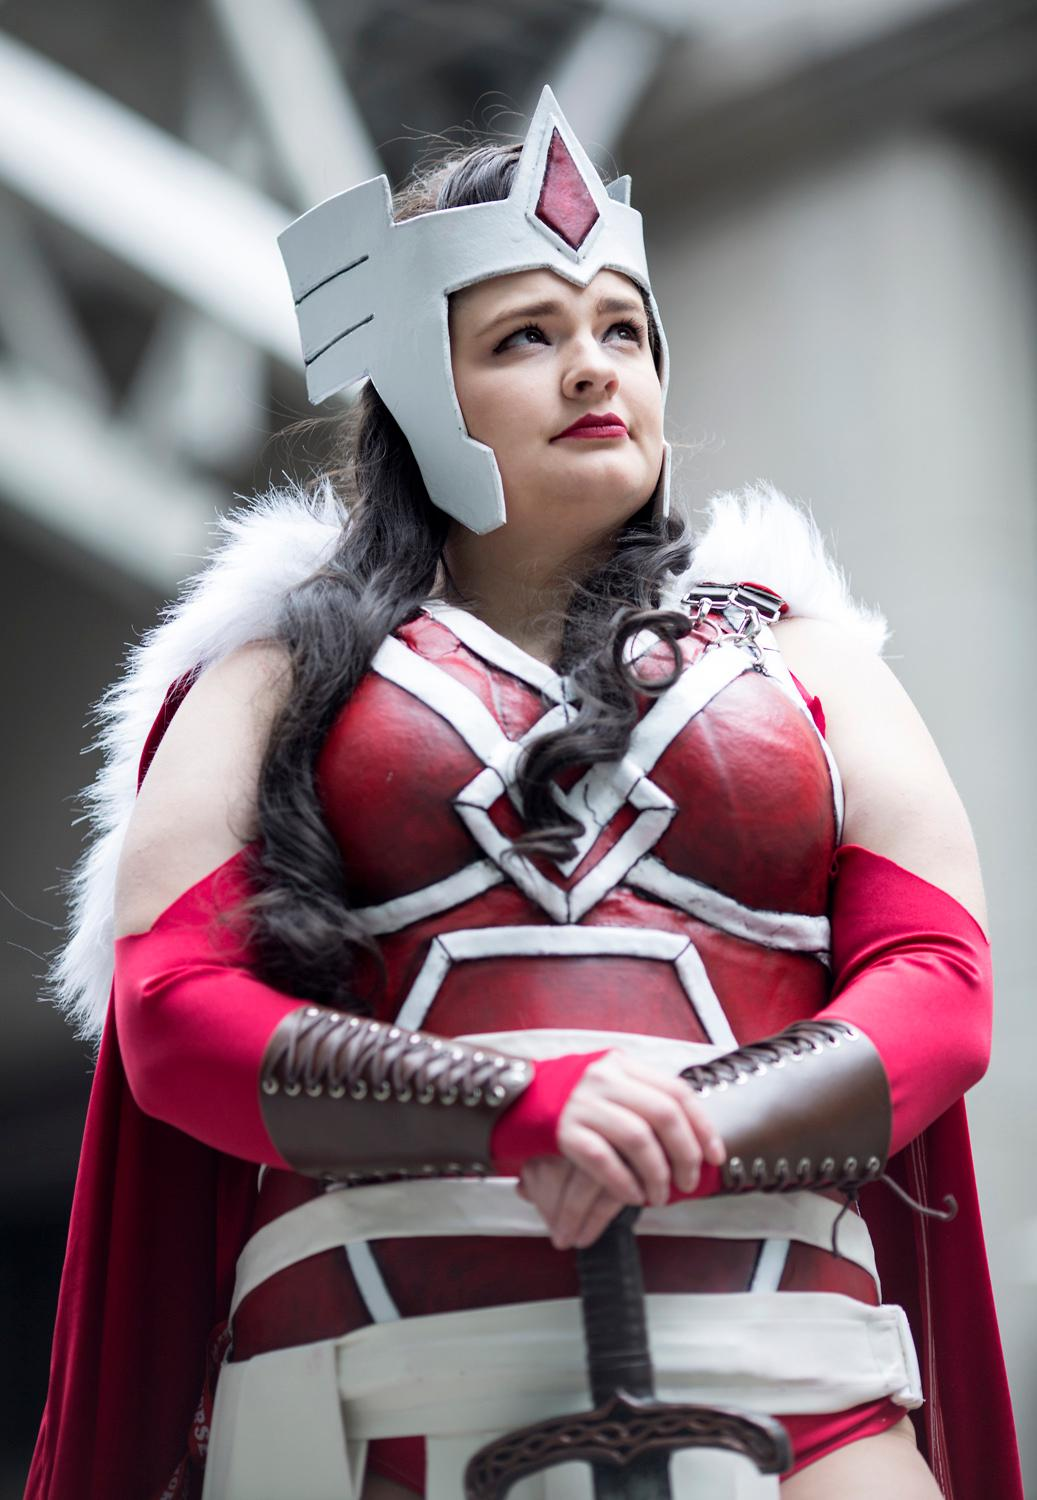 Emerald City Comicon is the largest comic book and pop culture convention in the Pacific Northwest. Thousands come to the Washington State Convention Center in Seattle for 4 days of cosplay, comic books, celebrities, panels and more. This year, they're expecting upwards of 95,000 people! Today, (March 2, 2017) marks the halfway point of ECCC. (Image: Sy Bean / Seattle Refined)